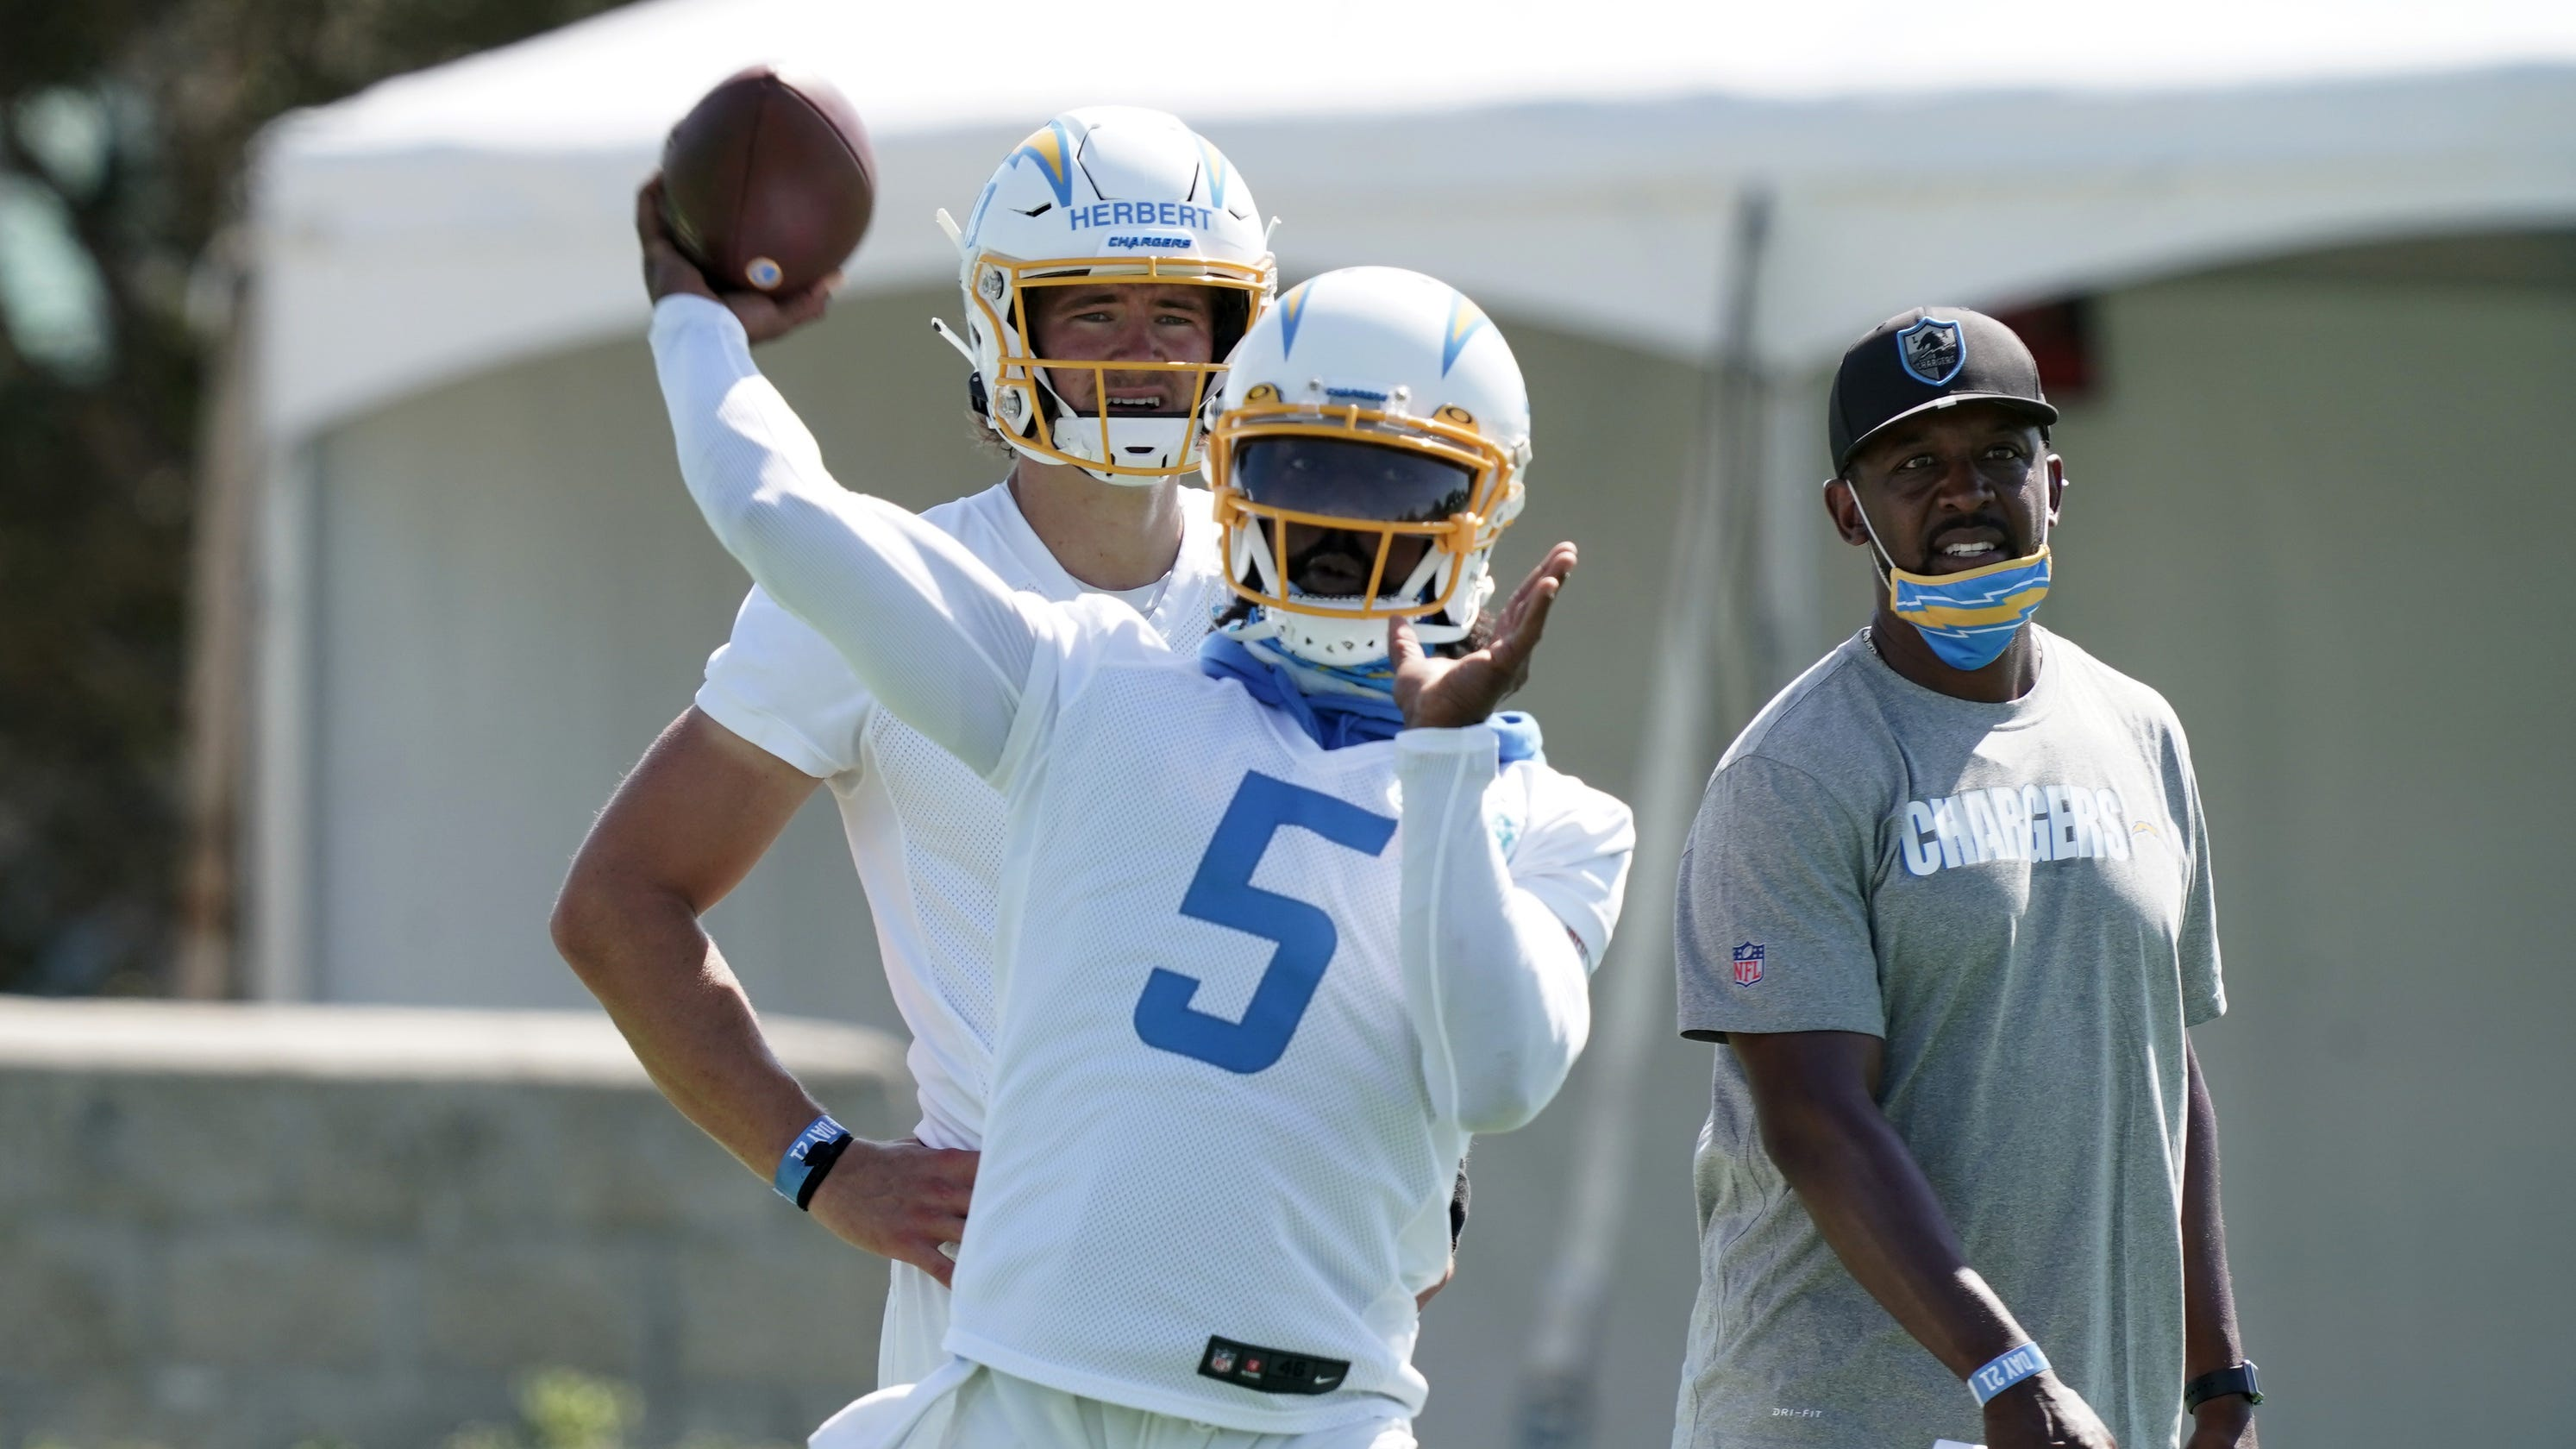 Los Angeles Chargers pick Tyrod Taylor to start at QB ahead of first-round rookie Justin Herbert